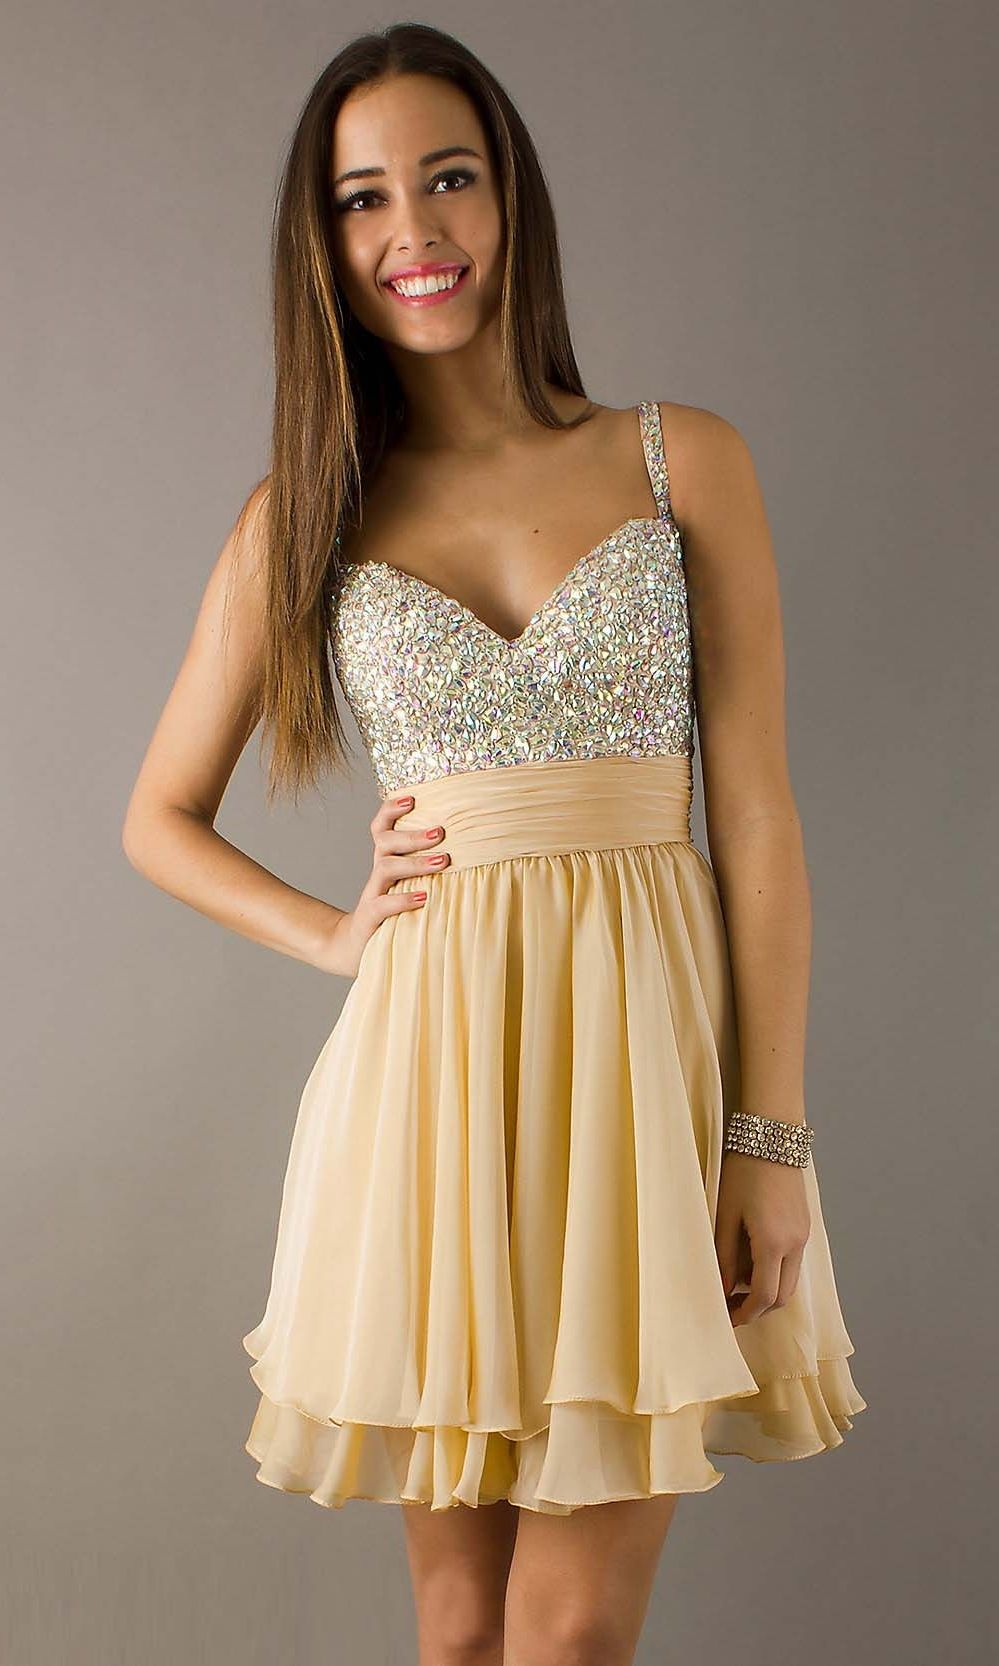 Prom dresses prom dresses for teens with straps 2015 for Formal summer dresses for weddings